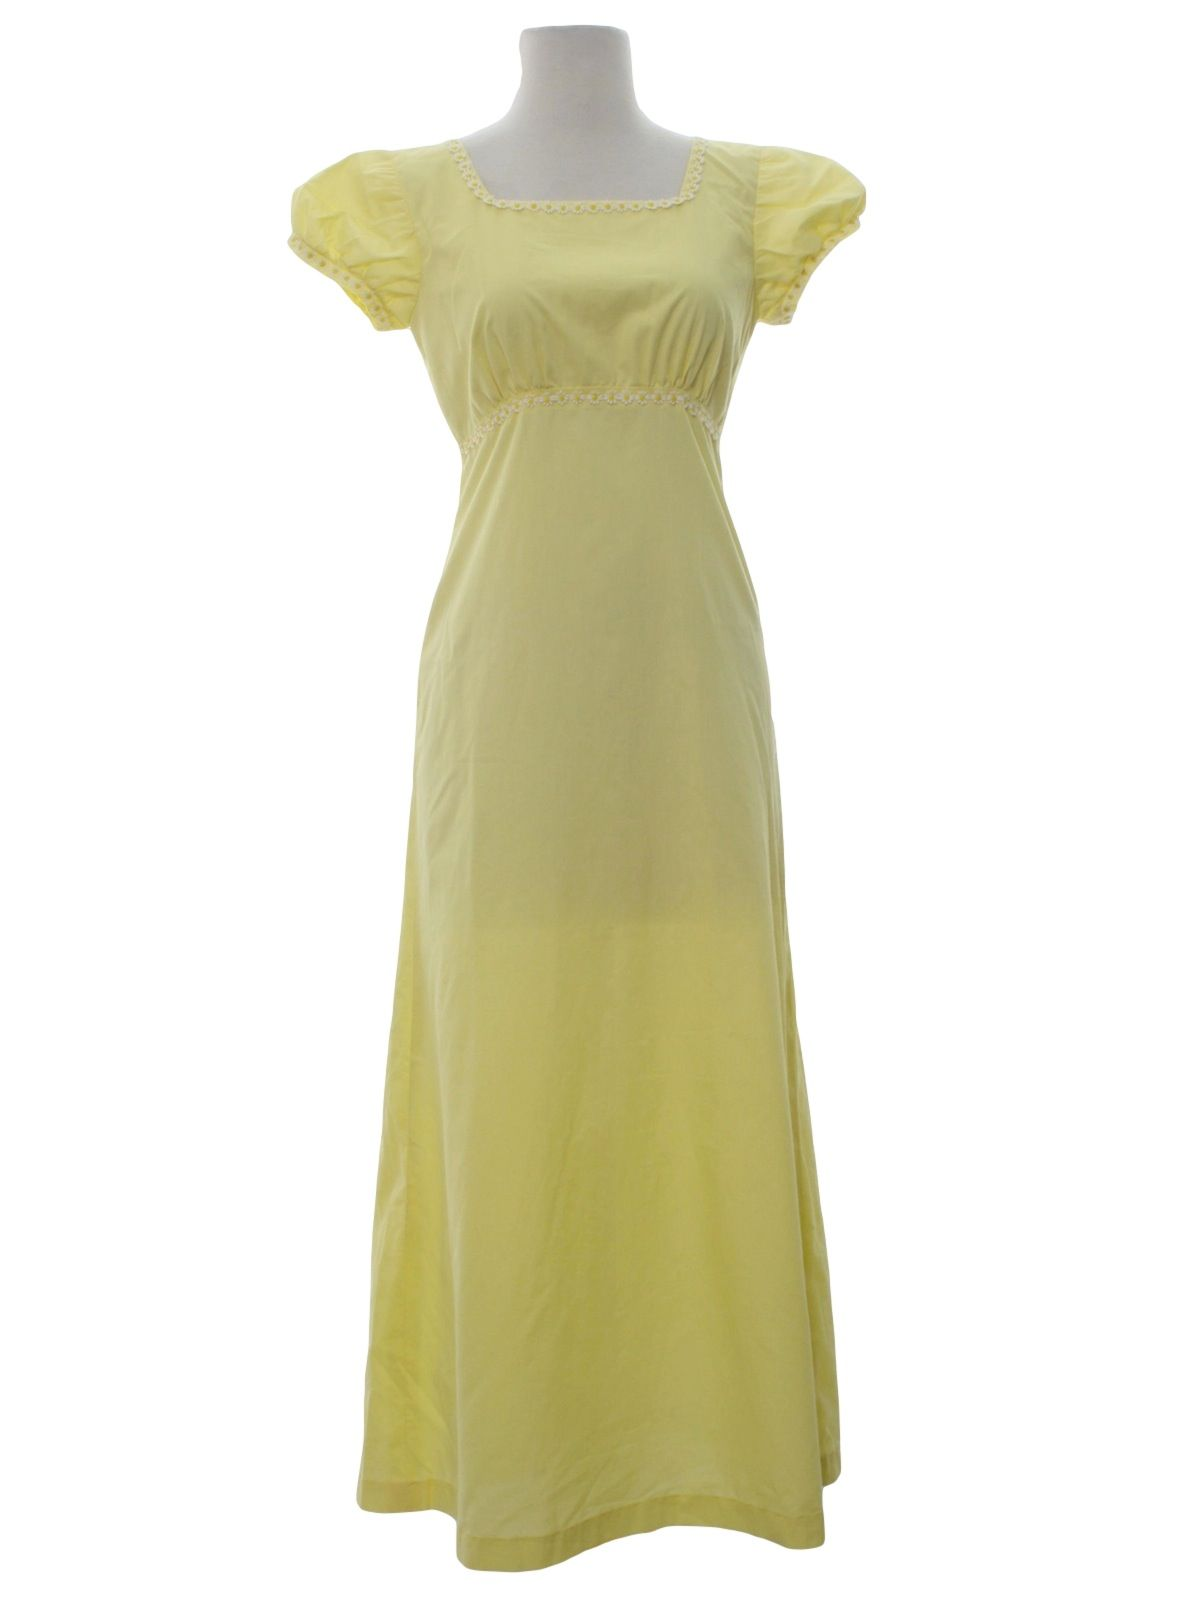 1970s Home Sewn Cocktail Dress: 70s -Home Sewn- Womens soft lemon yellow background polyester cotton blend puffy short sleeves Maxi prom dress. Squared neckline, fitted waistline. Dress features cute white and yellow daisy trim along the neckline, waistband and cuffs. pullover with back zippered closure.